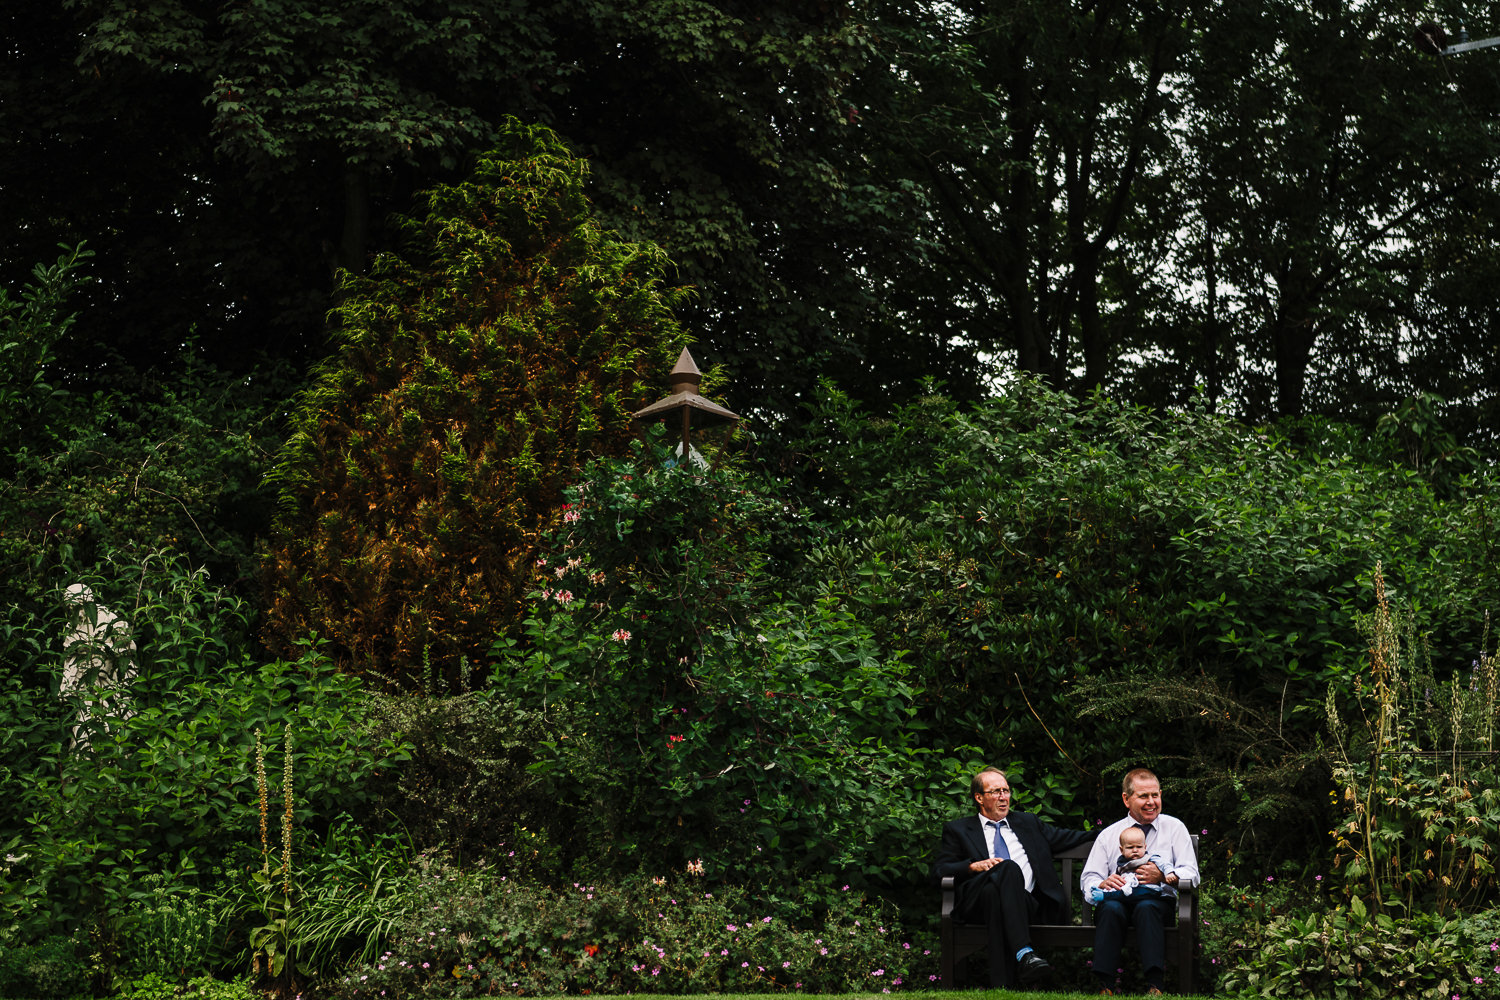 Two guests sitting on a bench